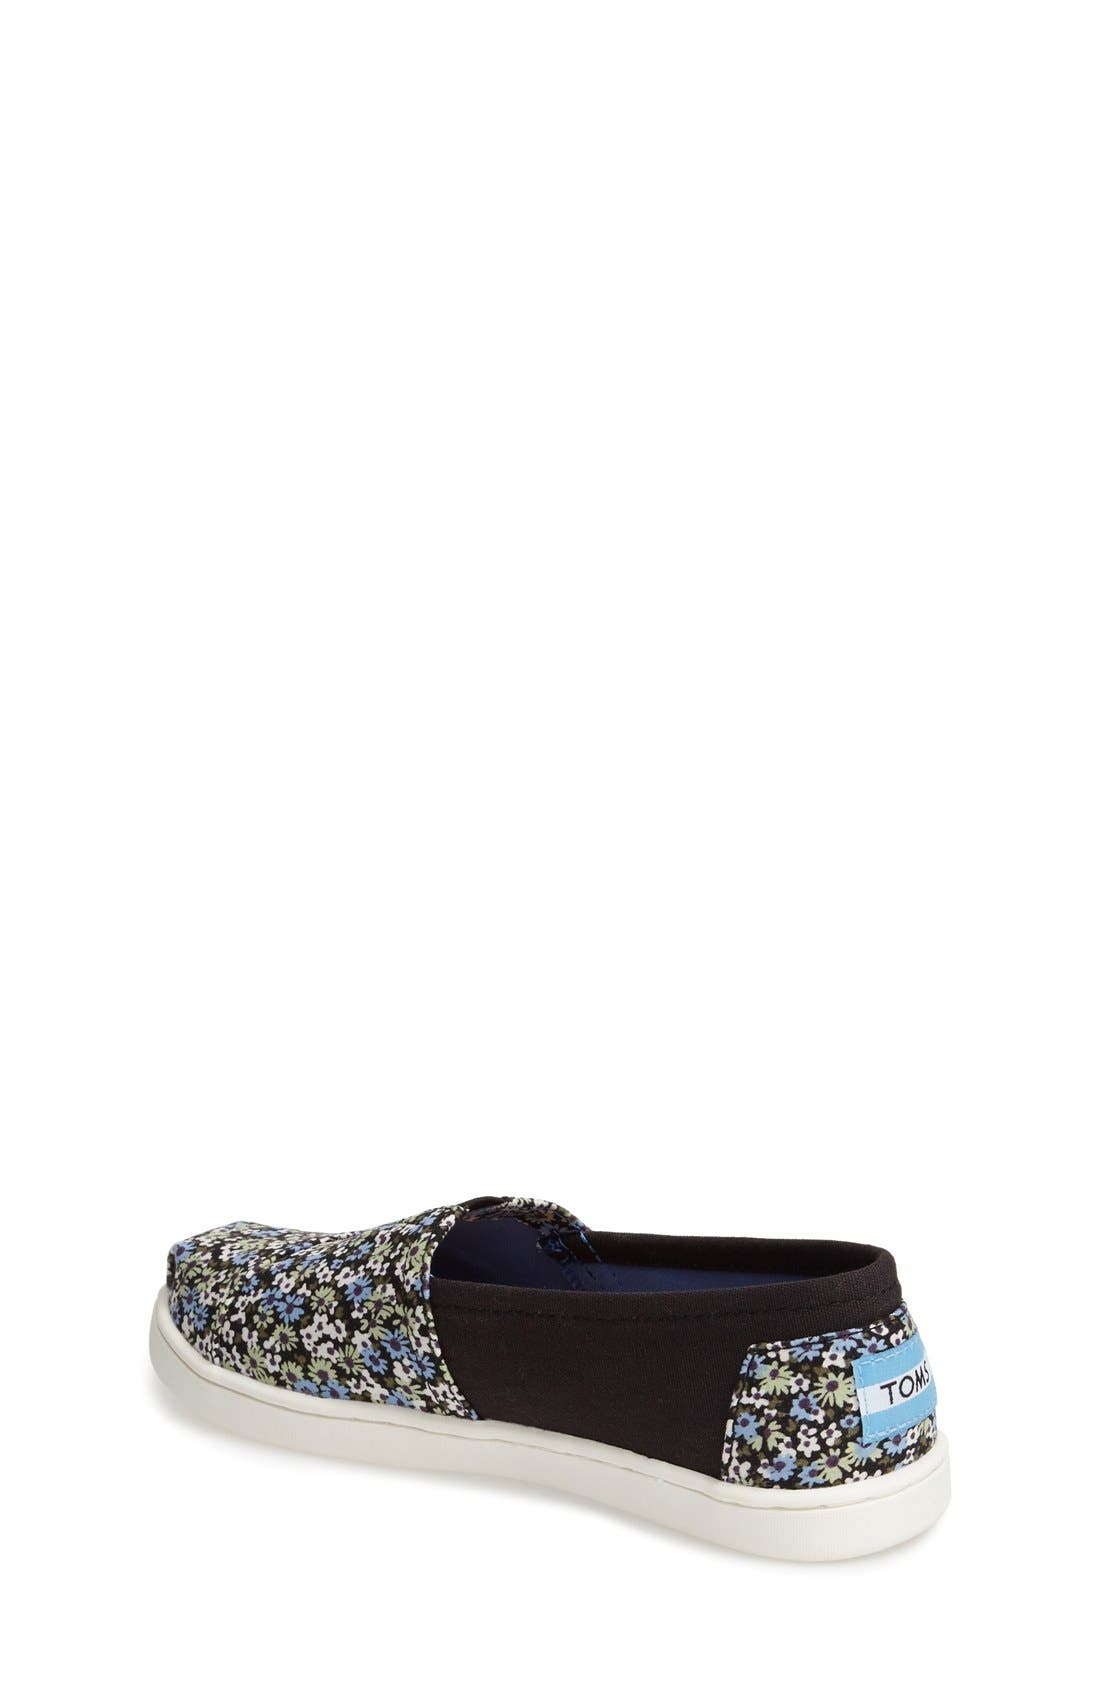 Alternate Image 2  - TOMS 'Classic - Black Canvas Ditsy Floral' Slip-On (Toddler, Little Kid & Big Kid)